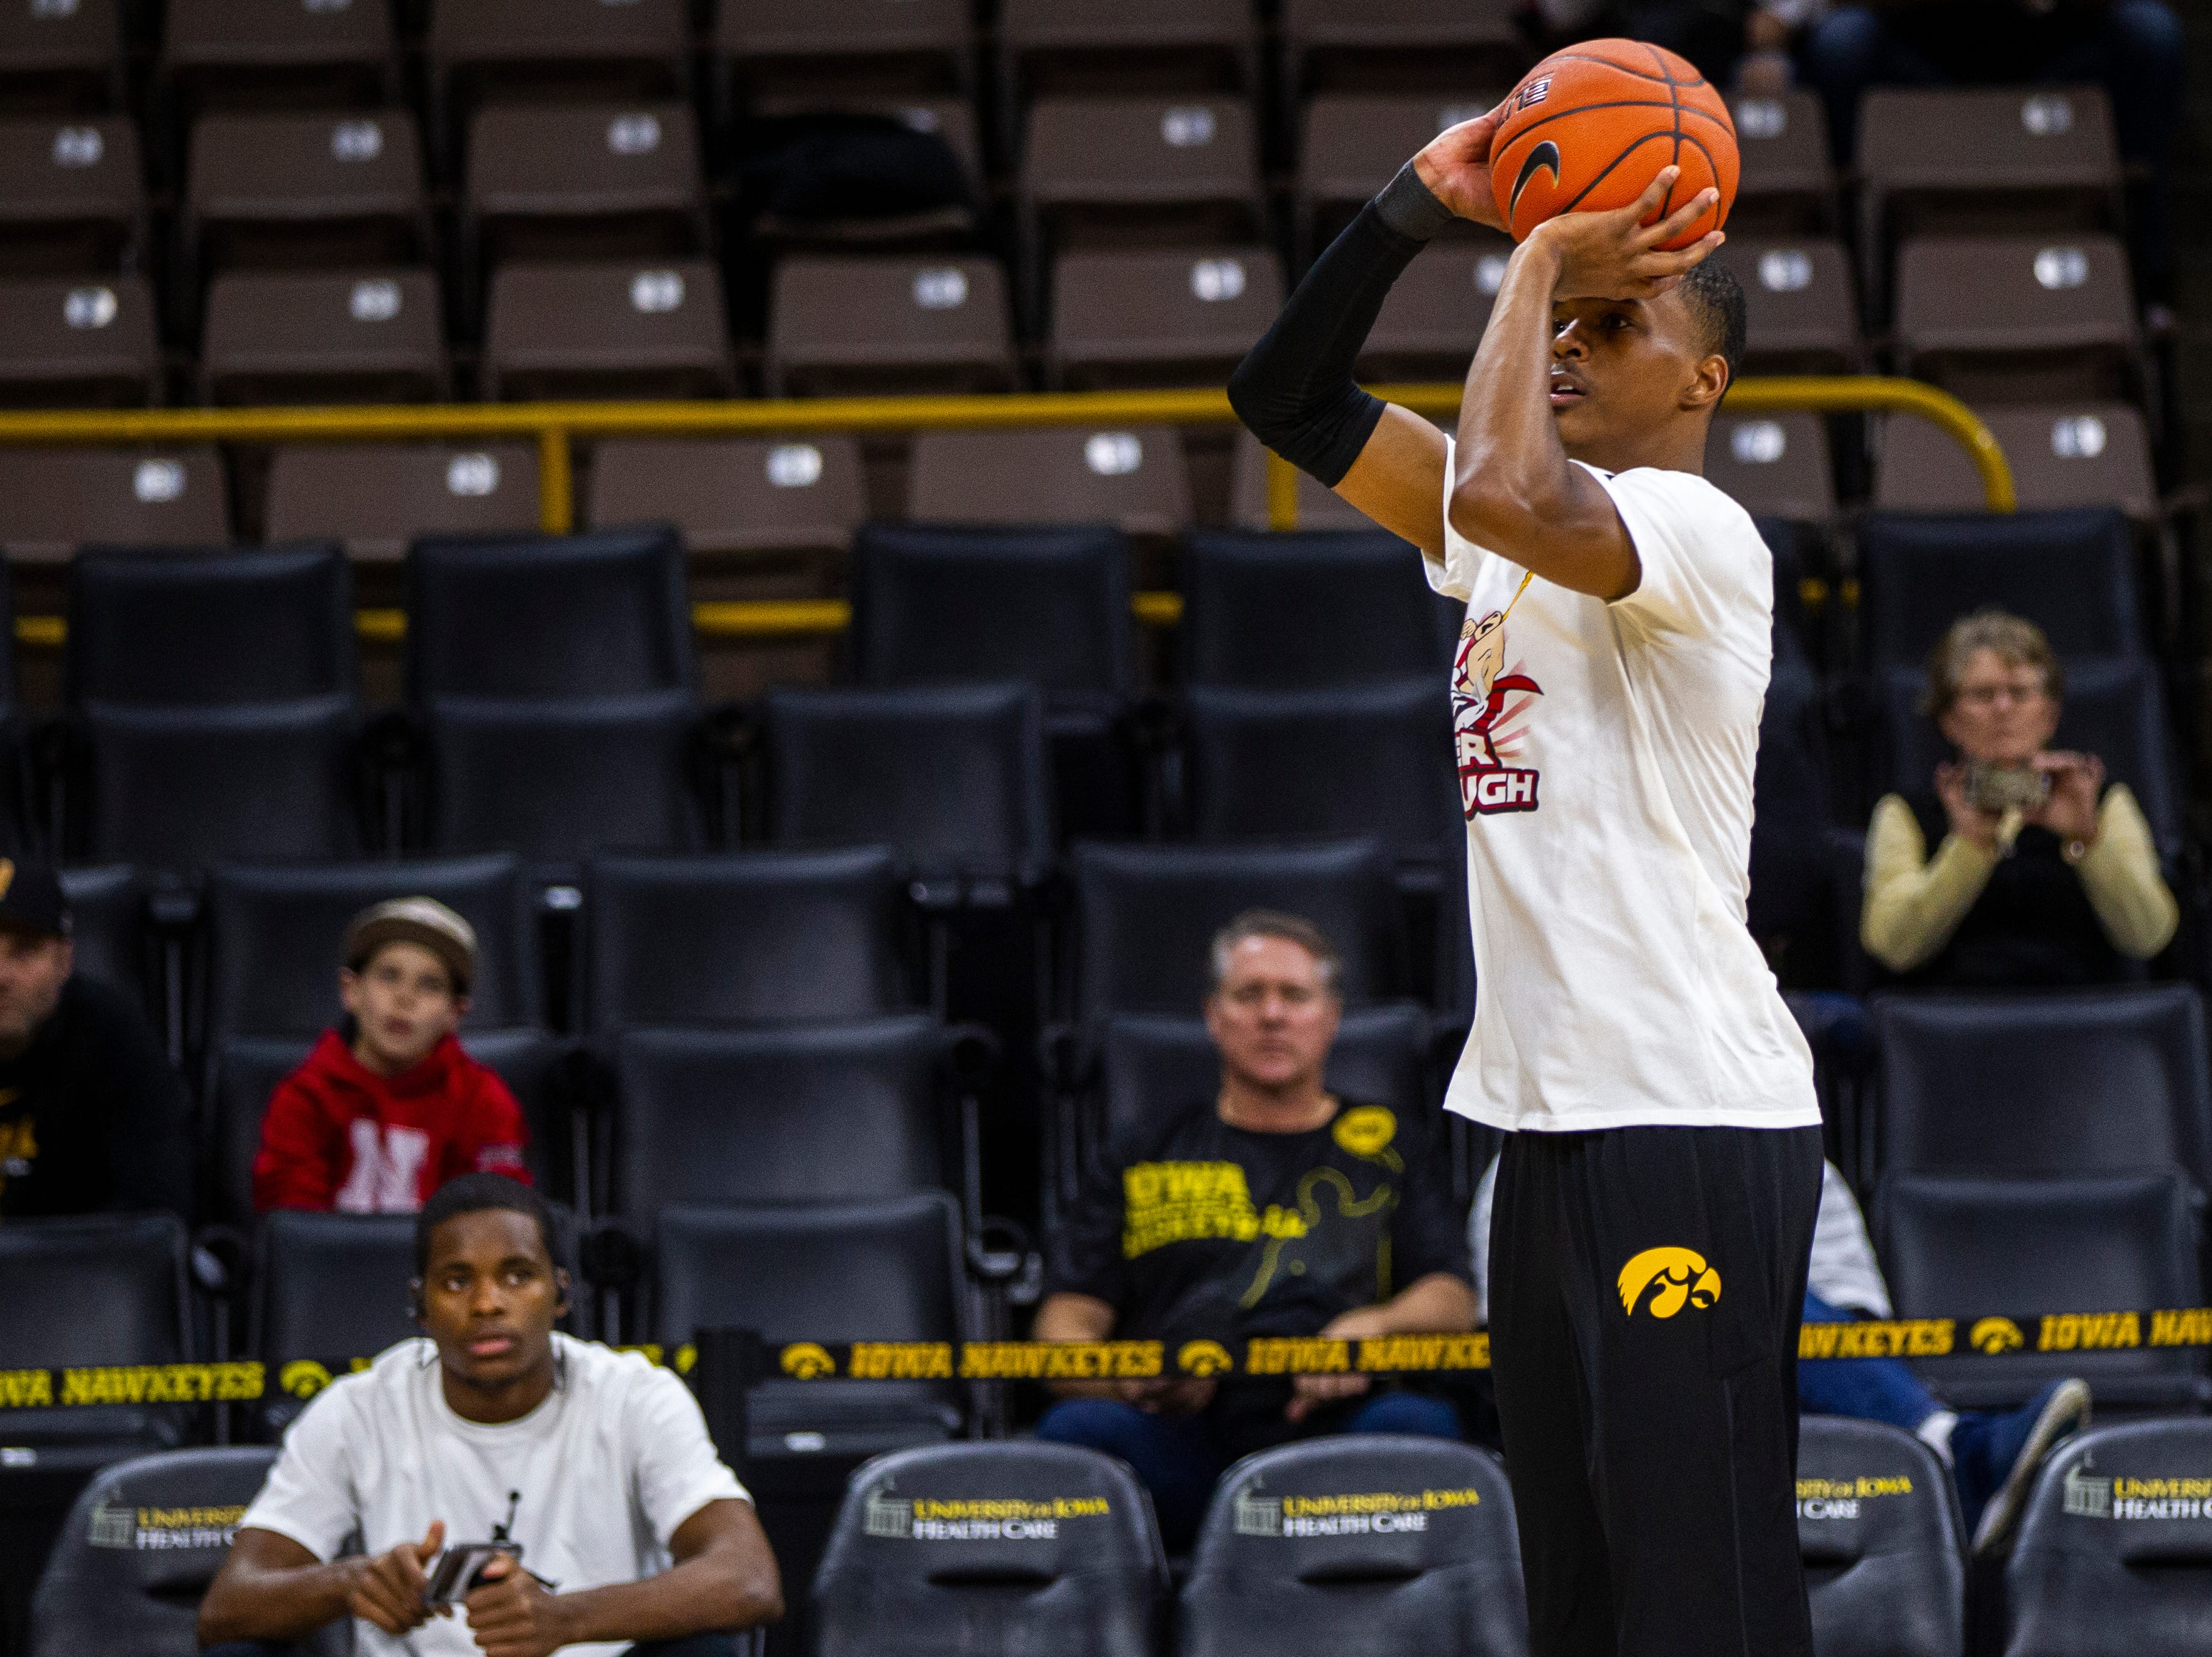 Iowa guard Maishe Dailey (1) warms up while wearing a shirt featuring a logo for Tate Schaefer, an 11-year-old from Williamsburg who has a tumor in his brain before a NCAA Big Ten Conference men's basketball game on Sunday, Jan. 6, 2019, at the Carver-Hawkeye Arena in Iowa City, Iowa.